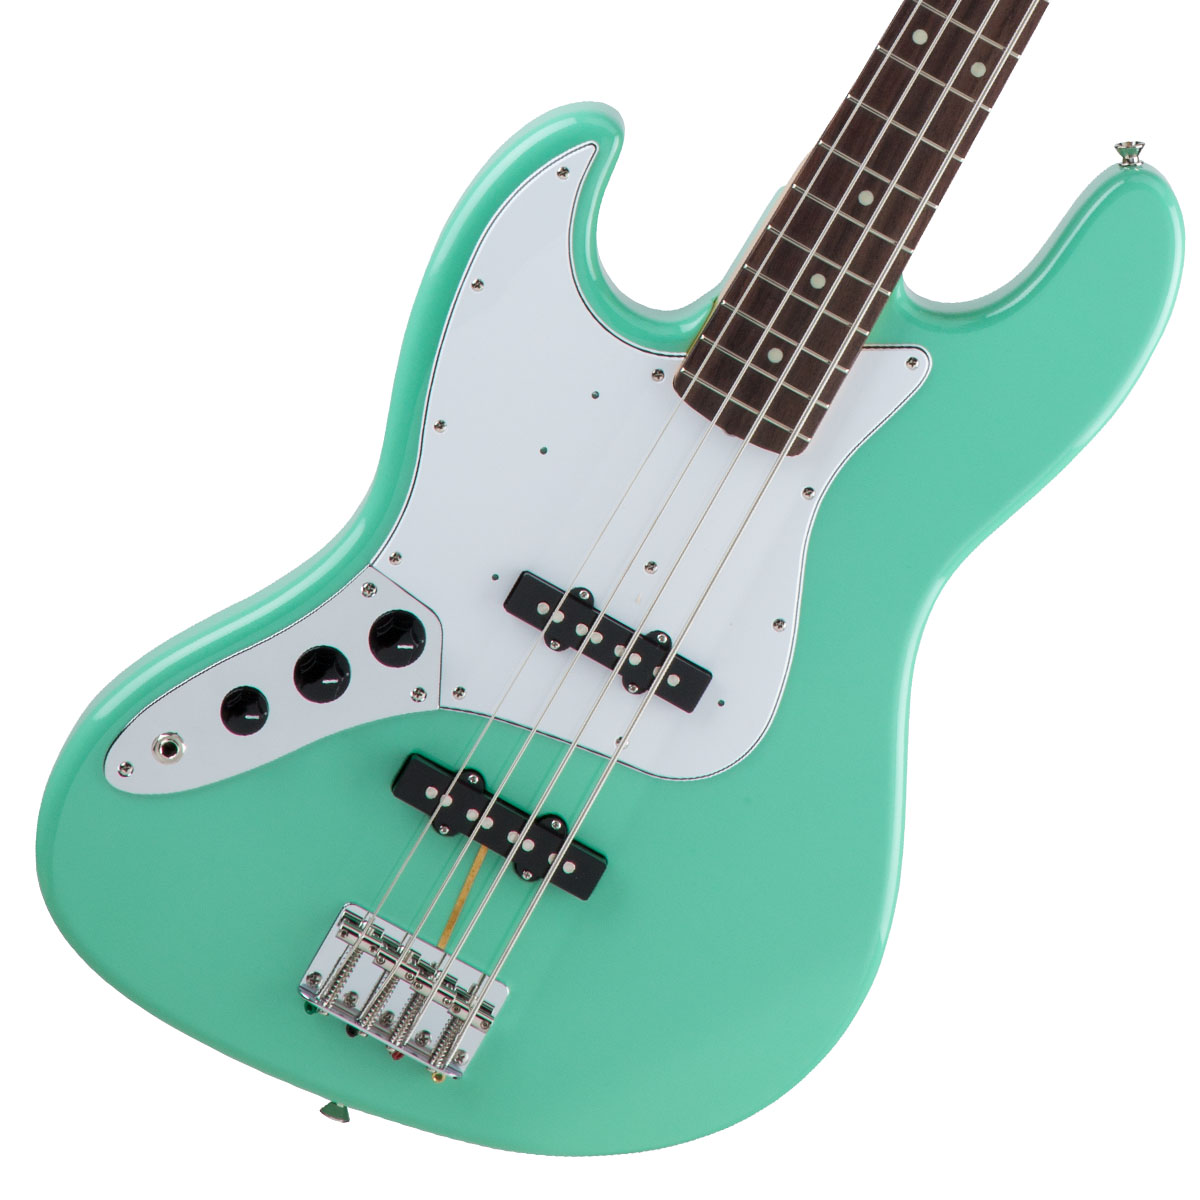 Fender / Made in Japan Traditional 60s Jazz Bass Left-Hand Surf Green 左利き用 【お取り寄せ商品】《FENDERケアキットプレゼント/+671038200》《ベース弦1setプレゼント!/+811131900》